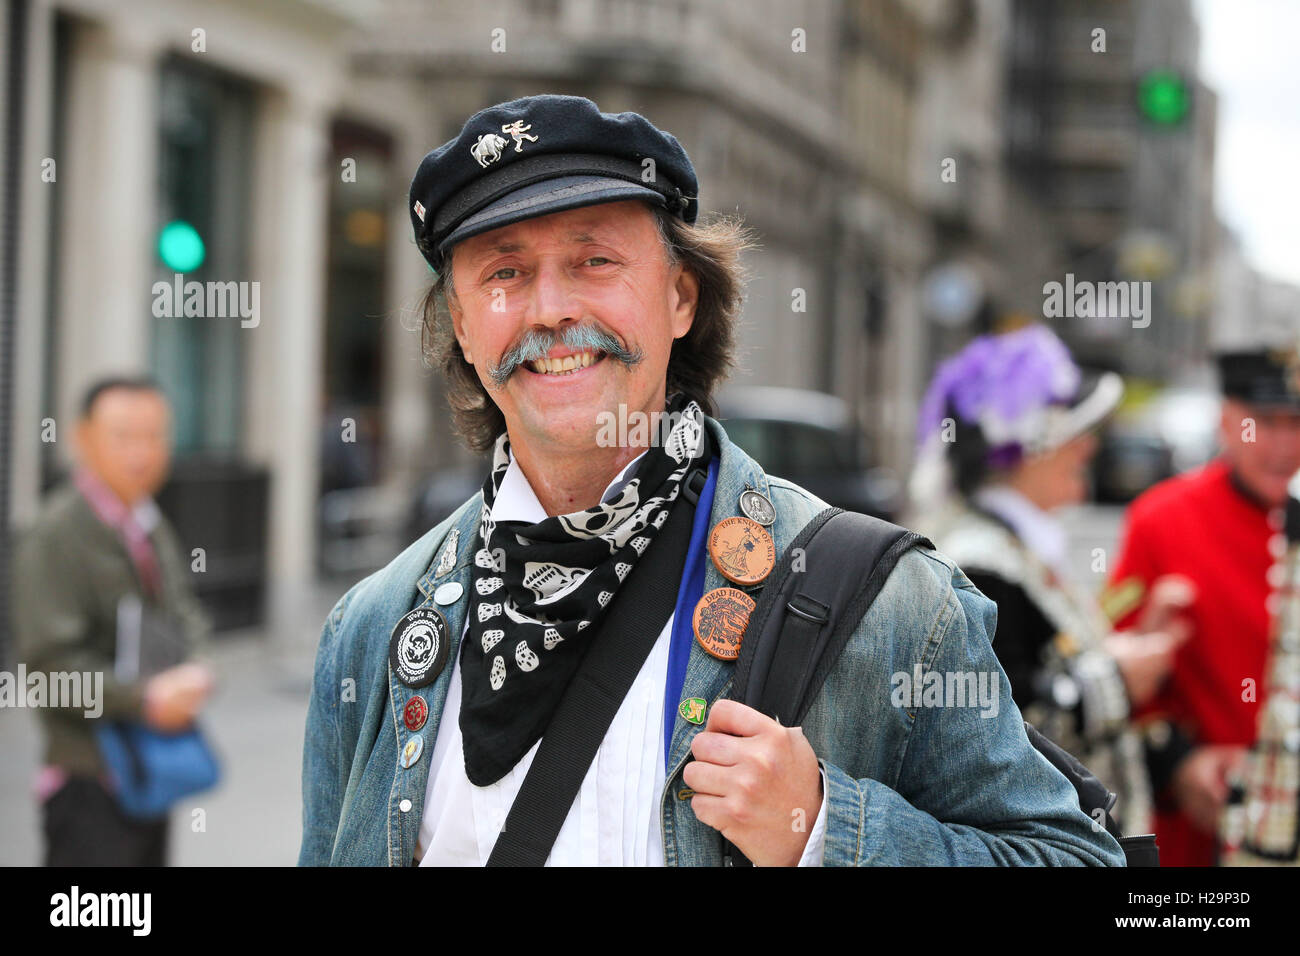 Guildhall Yard, London, UK. 25th Sep., 2016. The annual Pearly Kings and Queens & Costermongers harvest festival - Stock Image